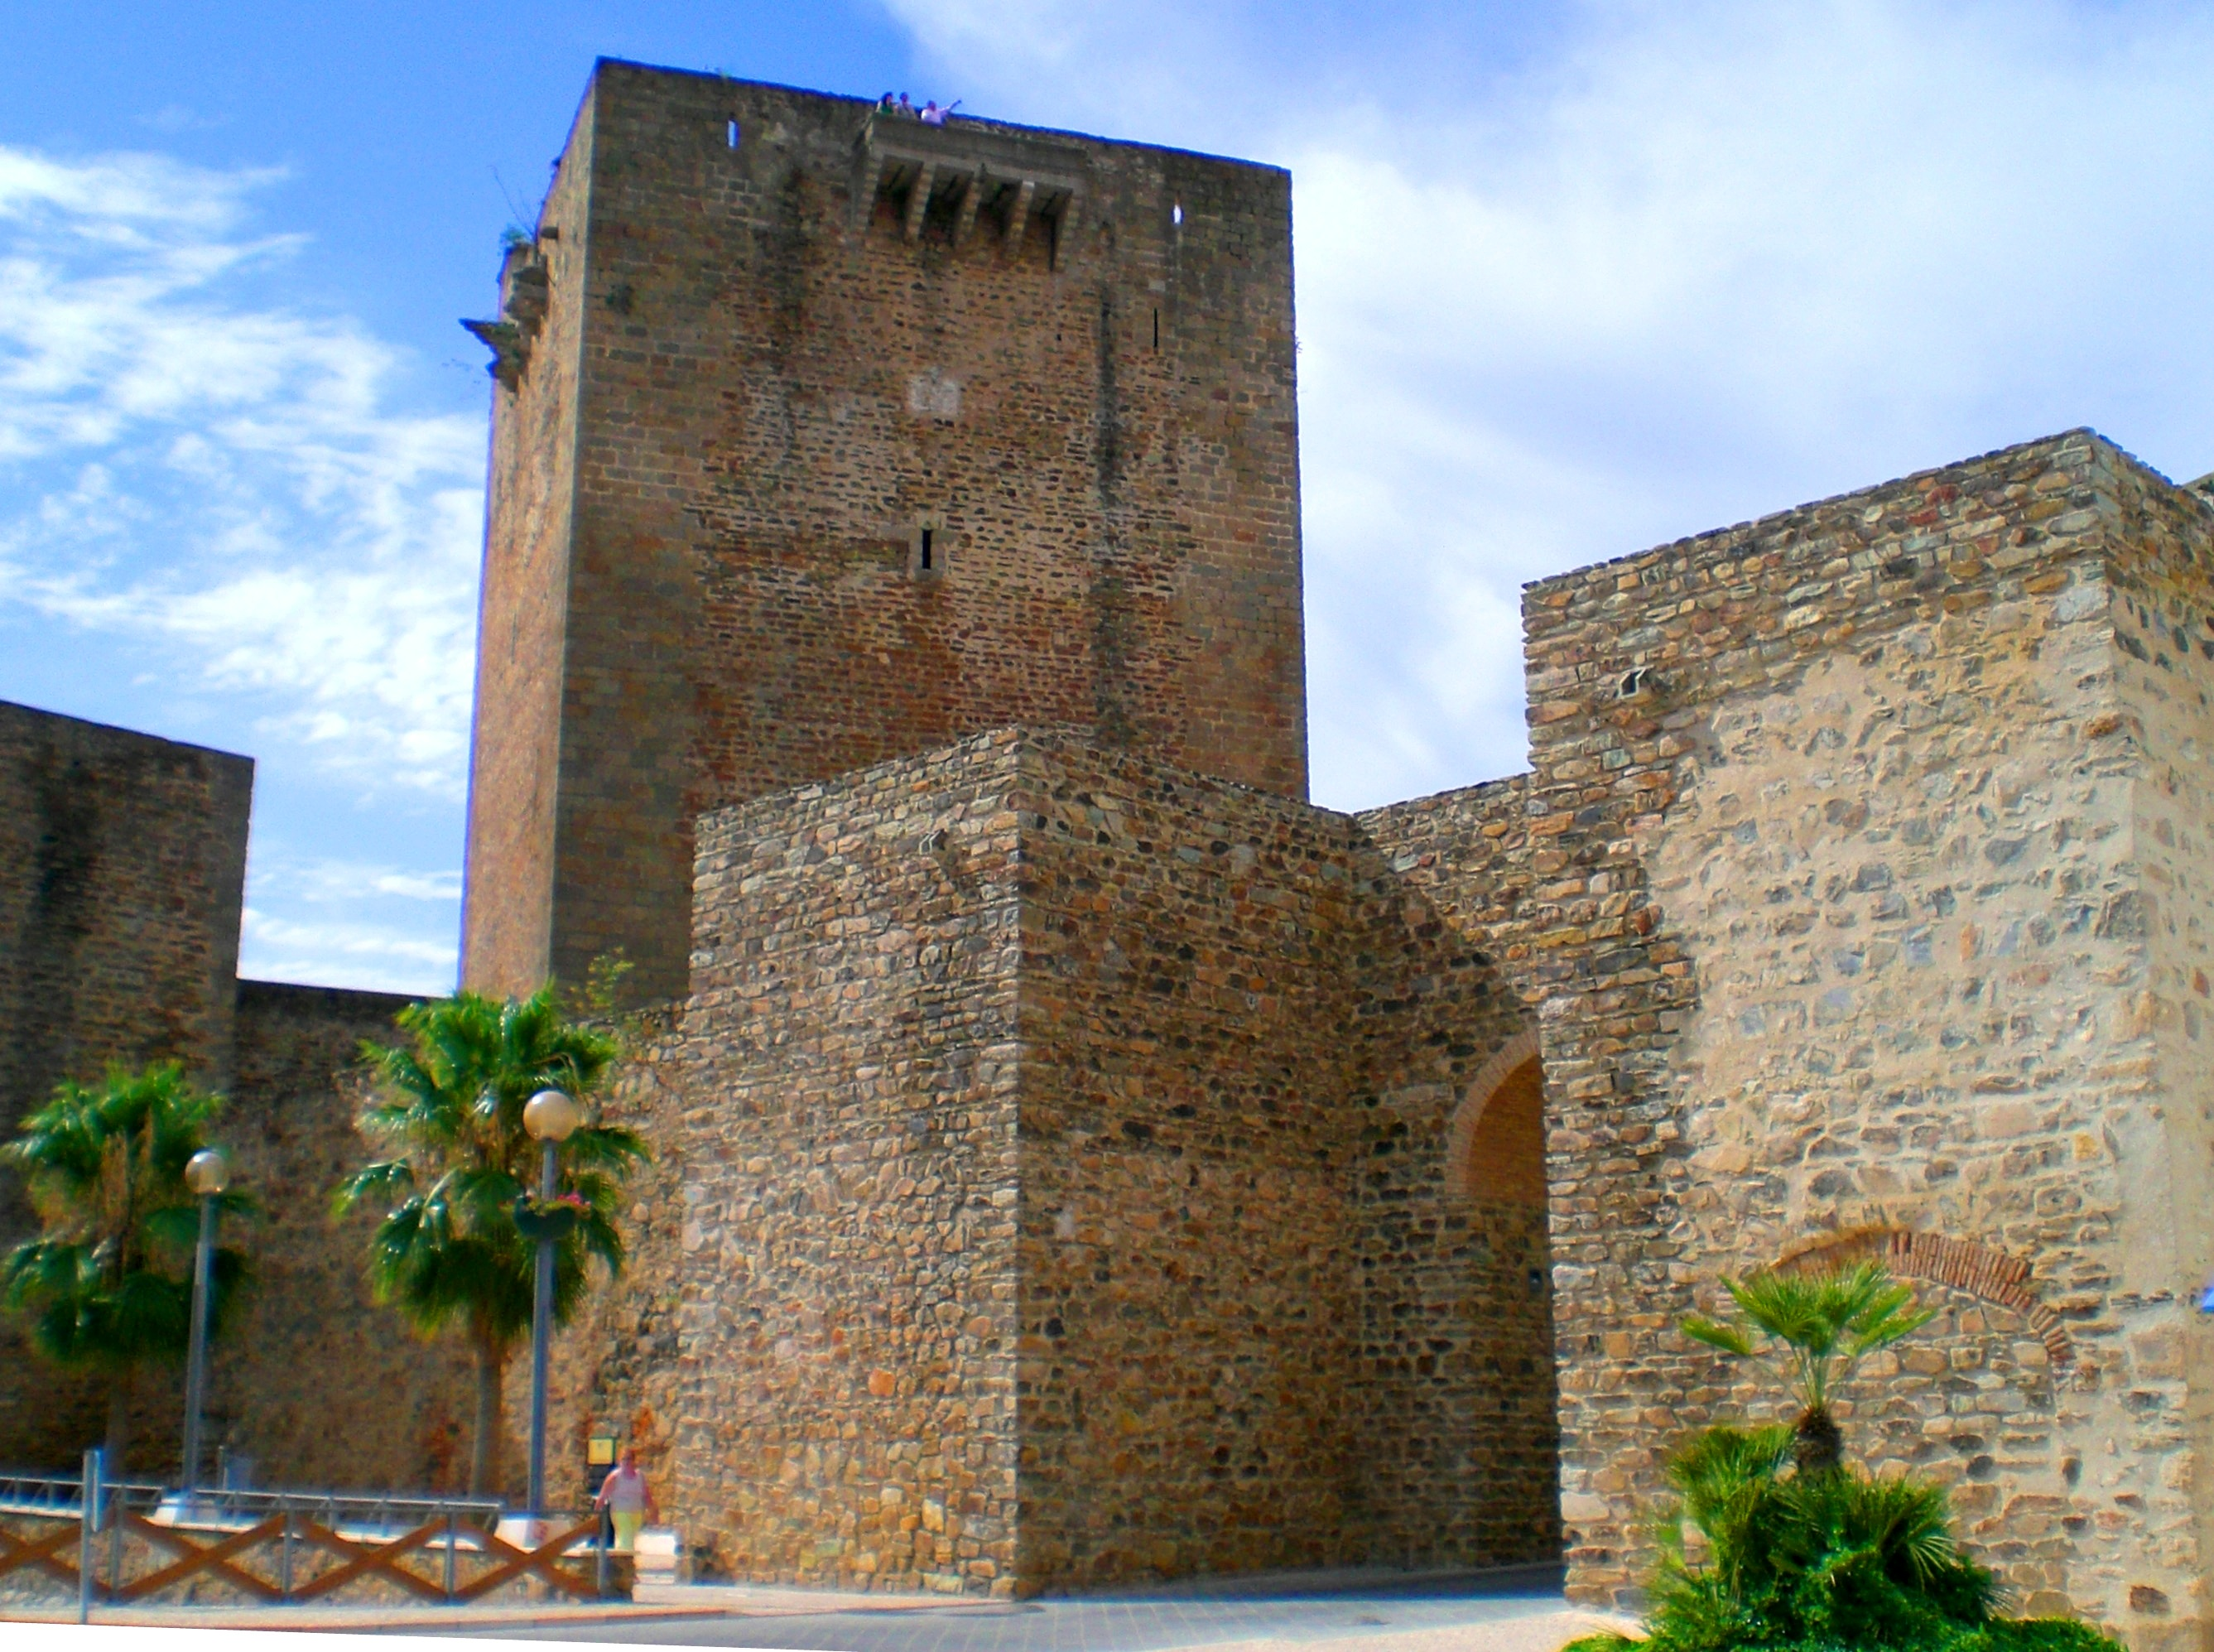 Badajoz Spain  city photos gallery : Tiedosto:Castle of Olivenza, Badajoz, Spain August 2007 ...